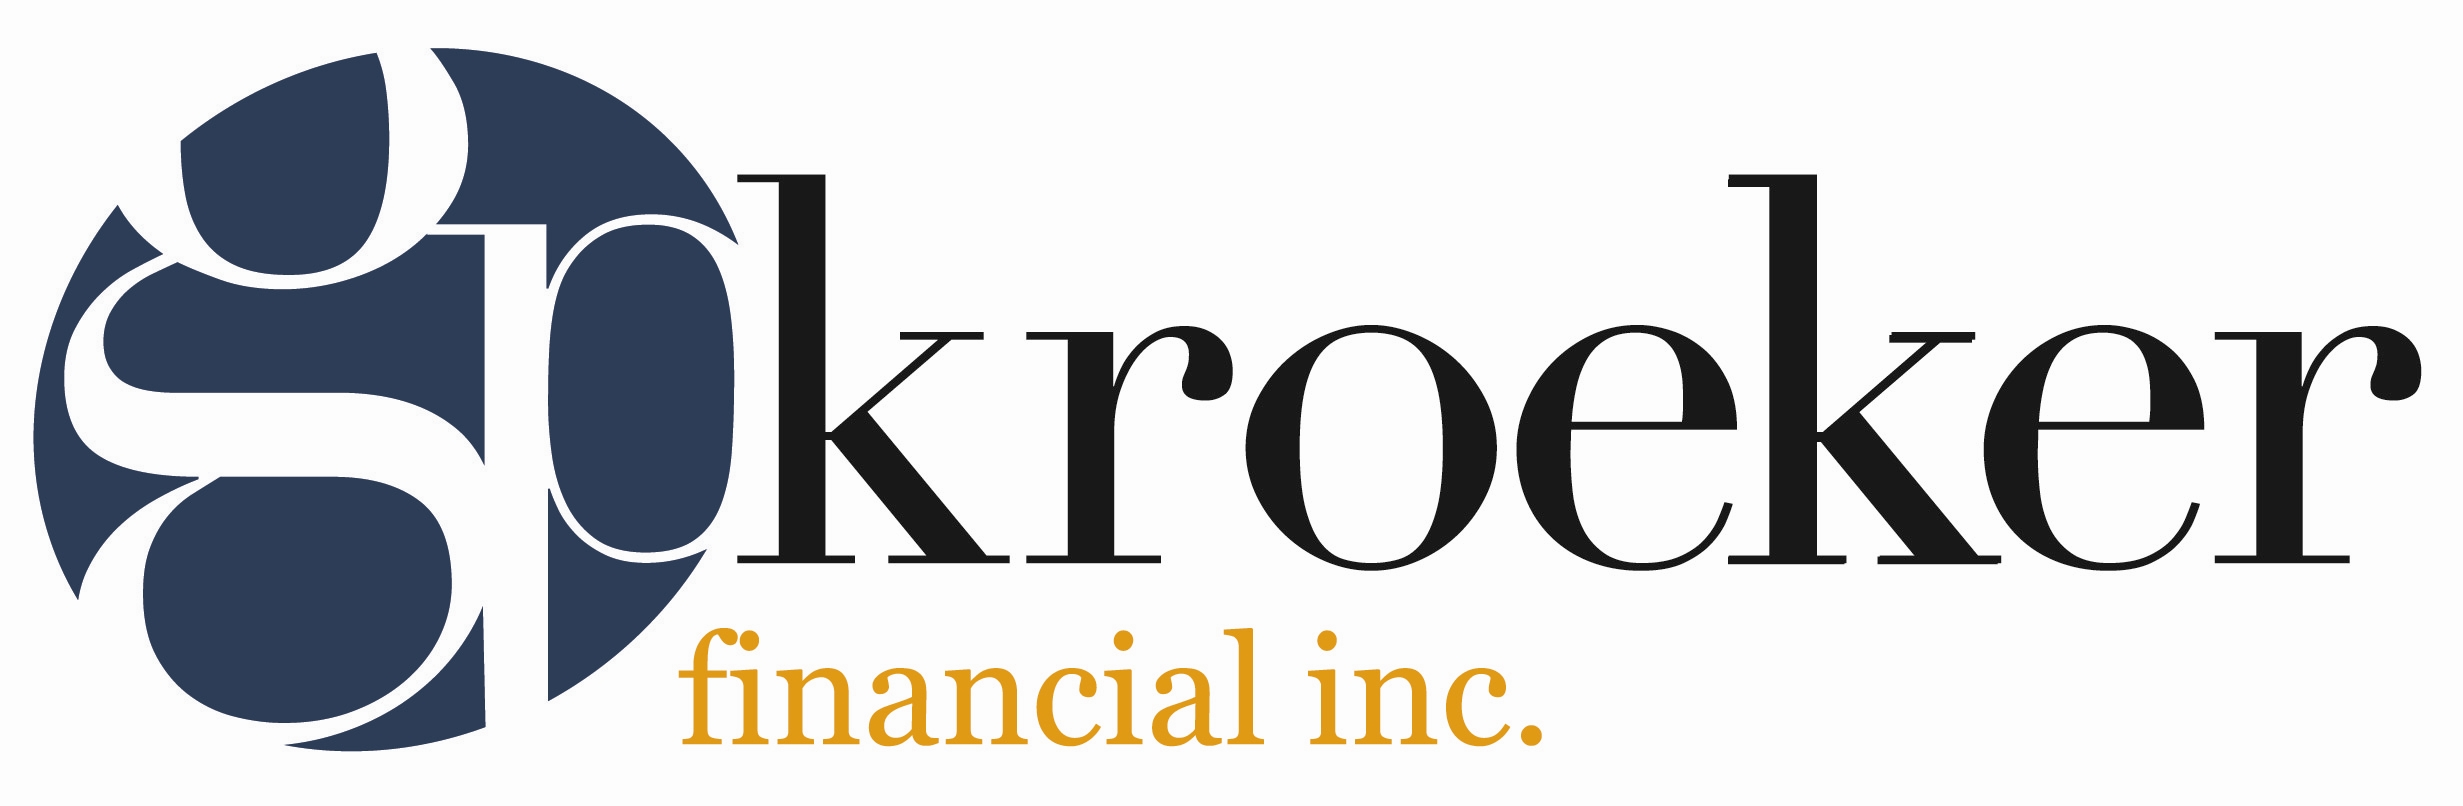 GP Kroeker Financial Inc. Logo